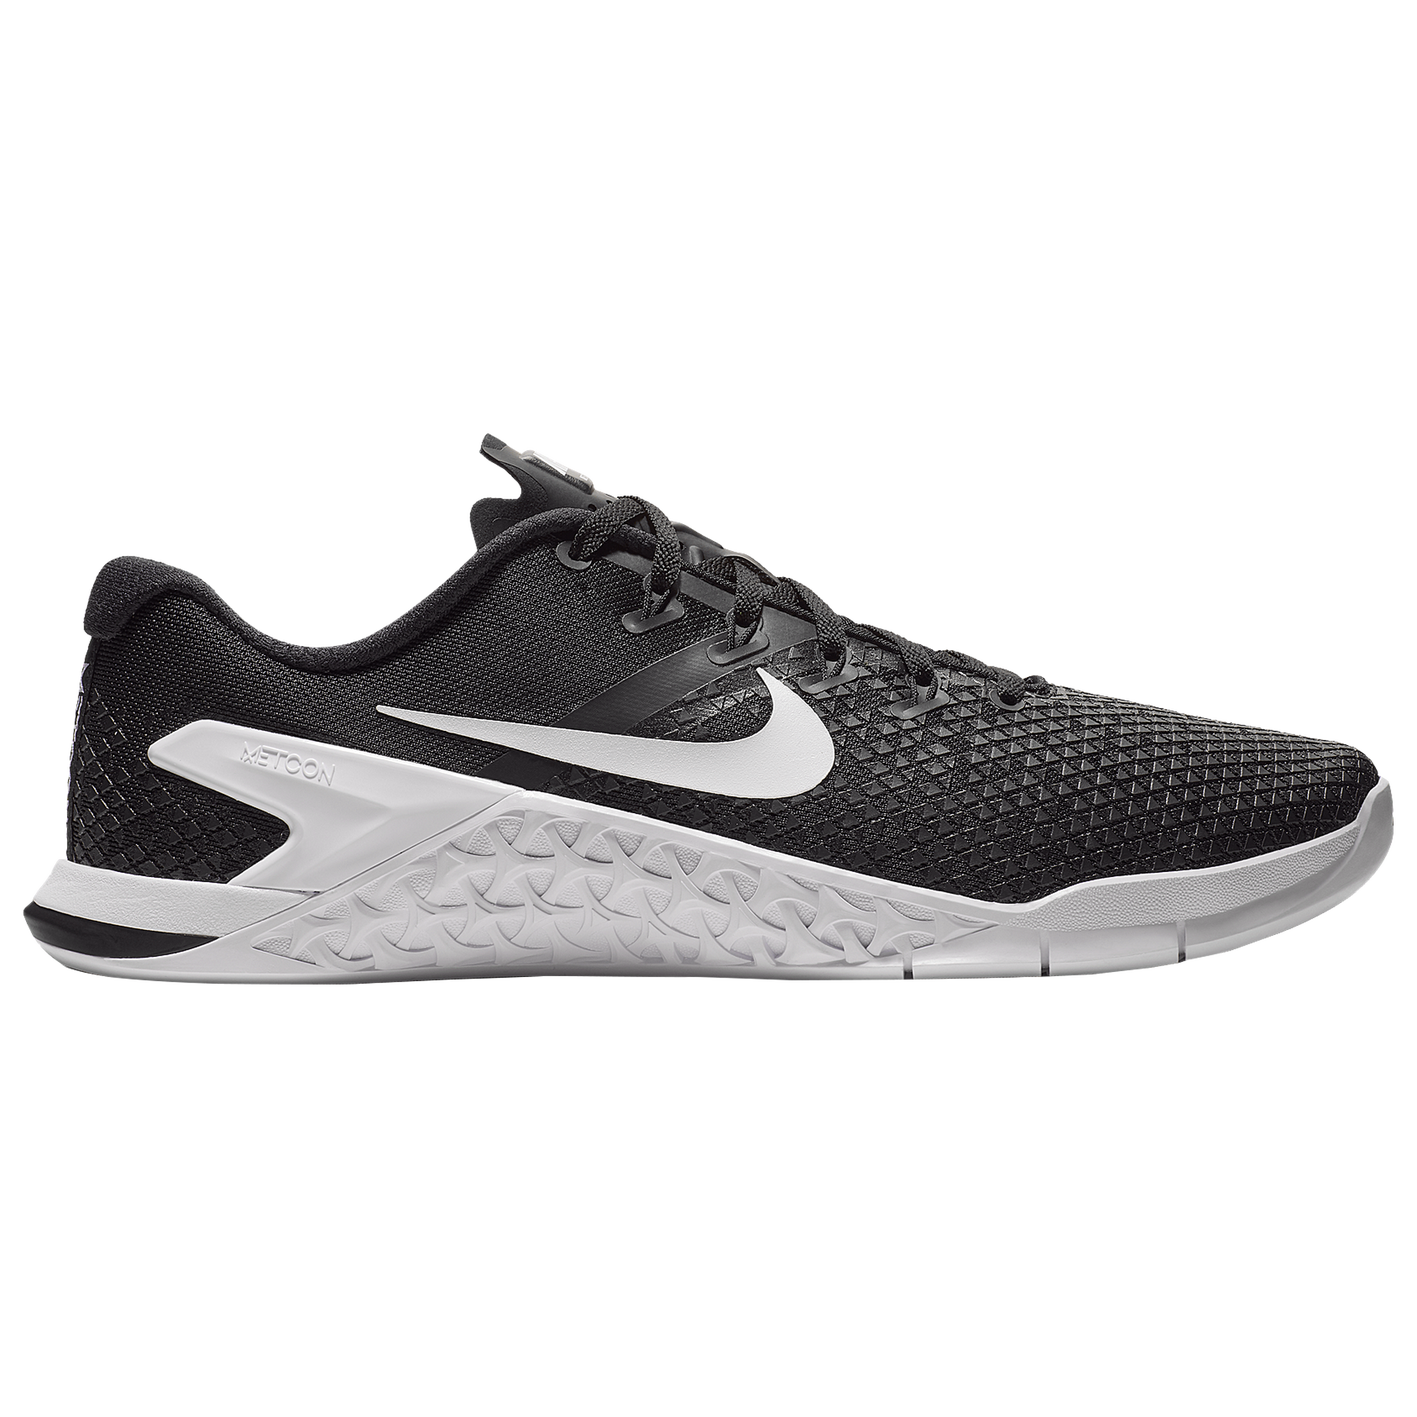 c1a916635581e Nike Metcon 4 XD - Men's - Strength/Weight Training - Shoes - Black ...